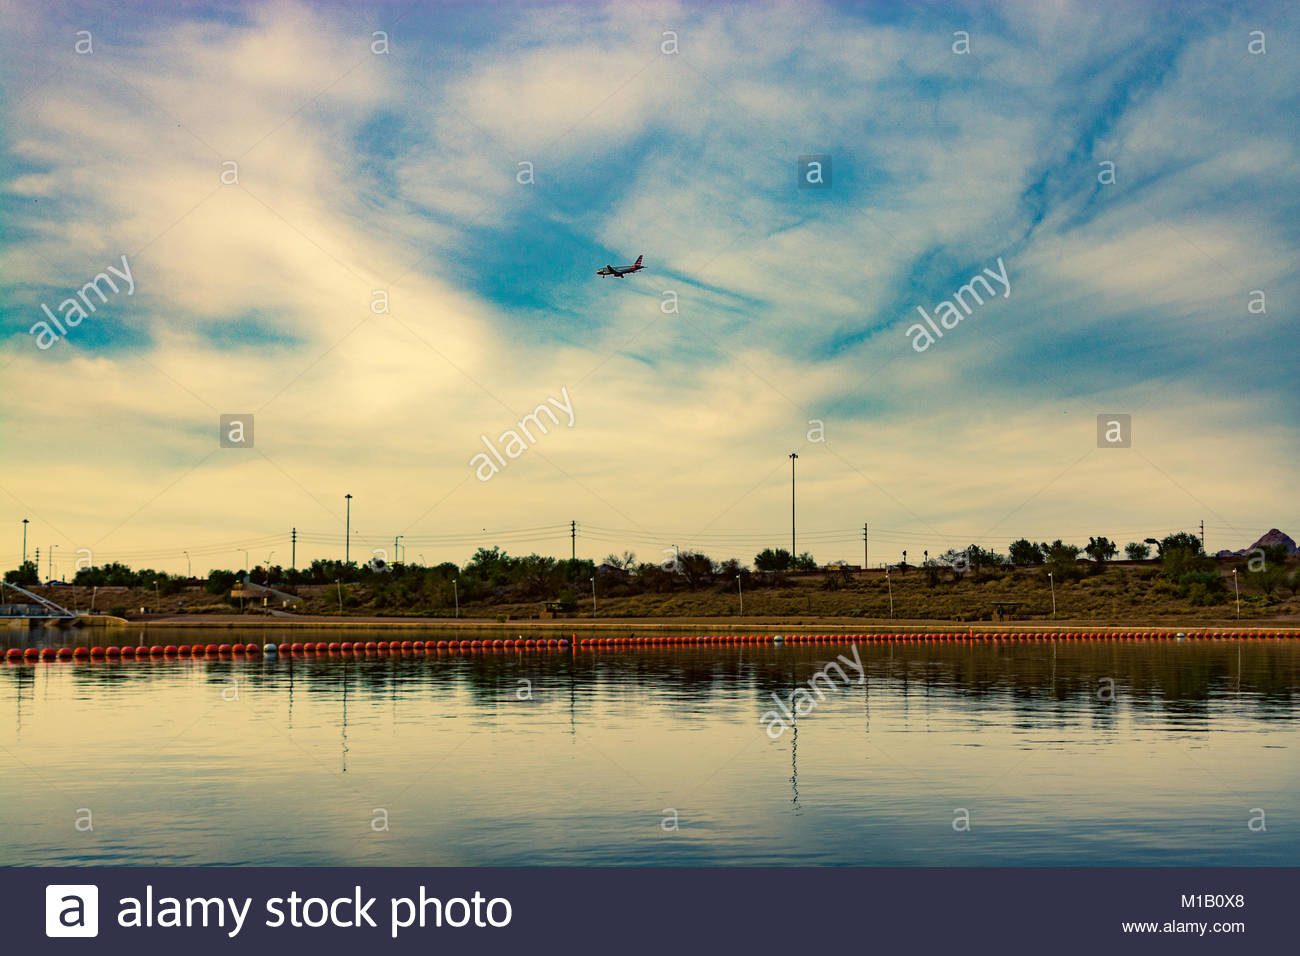 the town lake - Stock Image